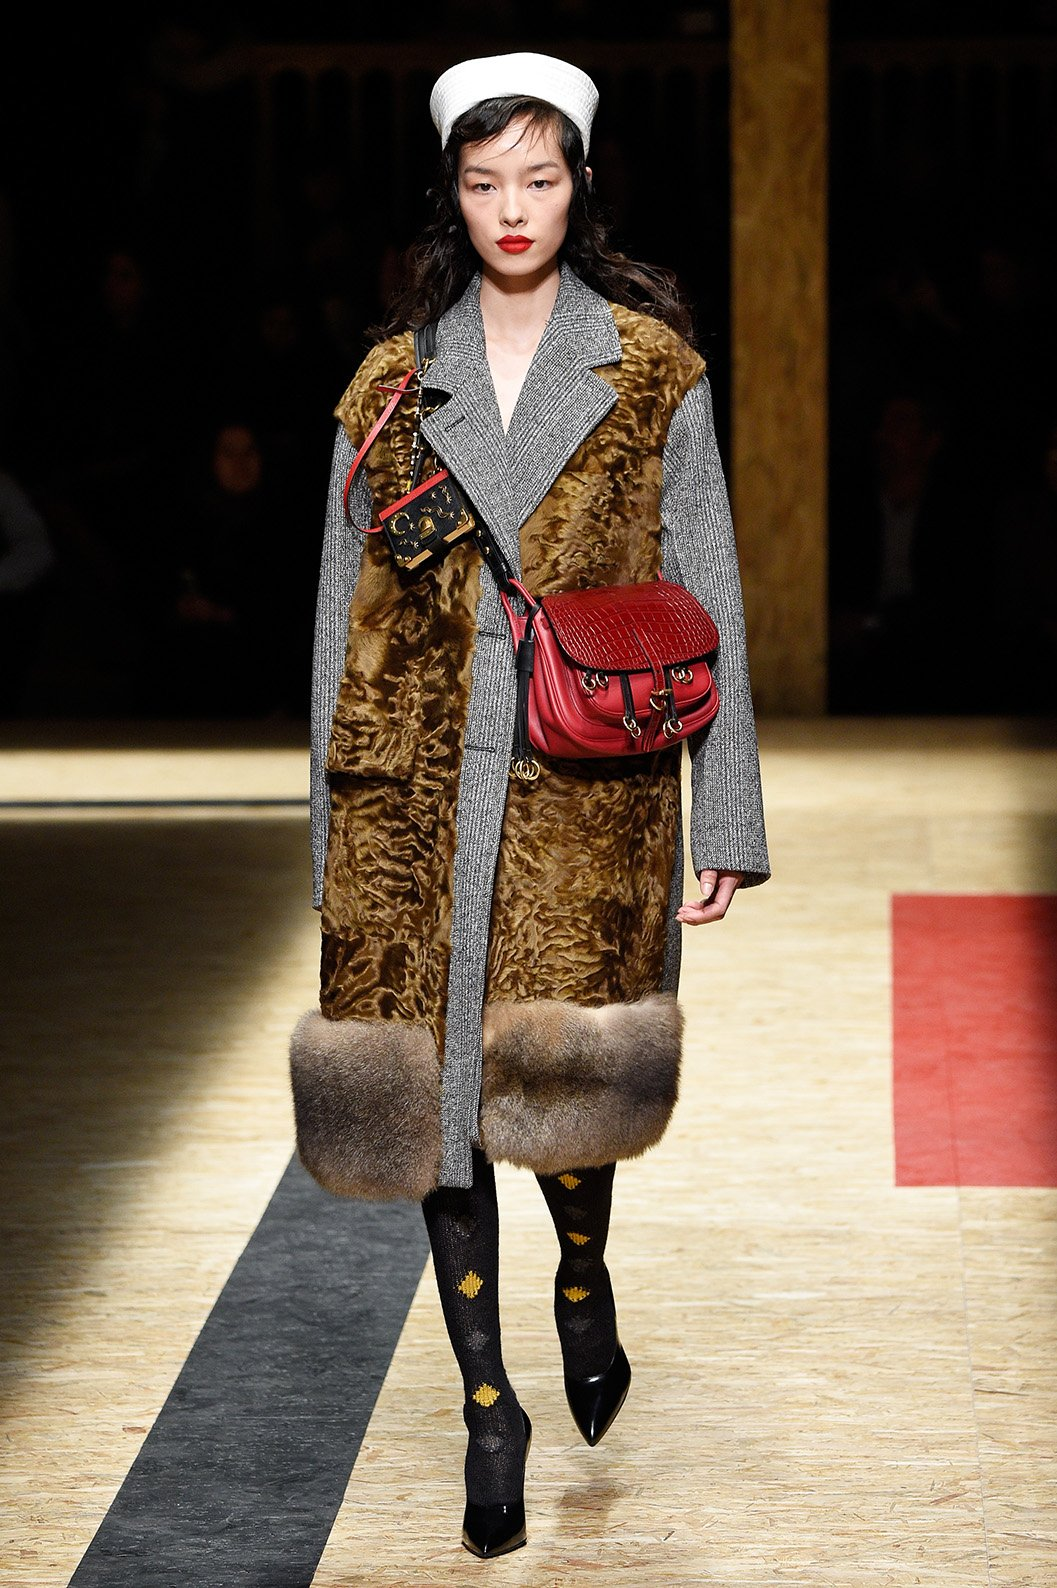 Prada - Runway - Milan Fashion Week  FW16